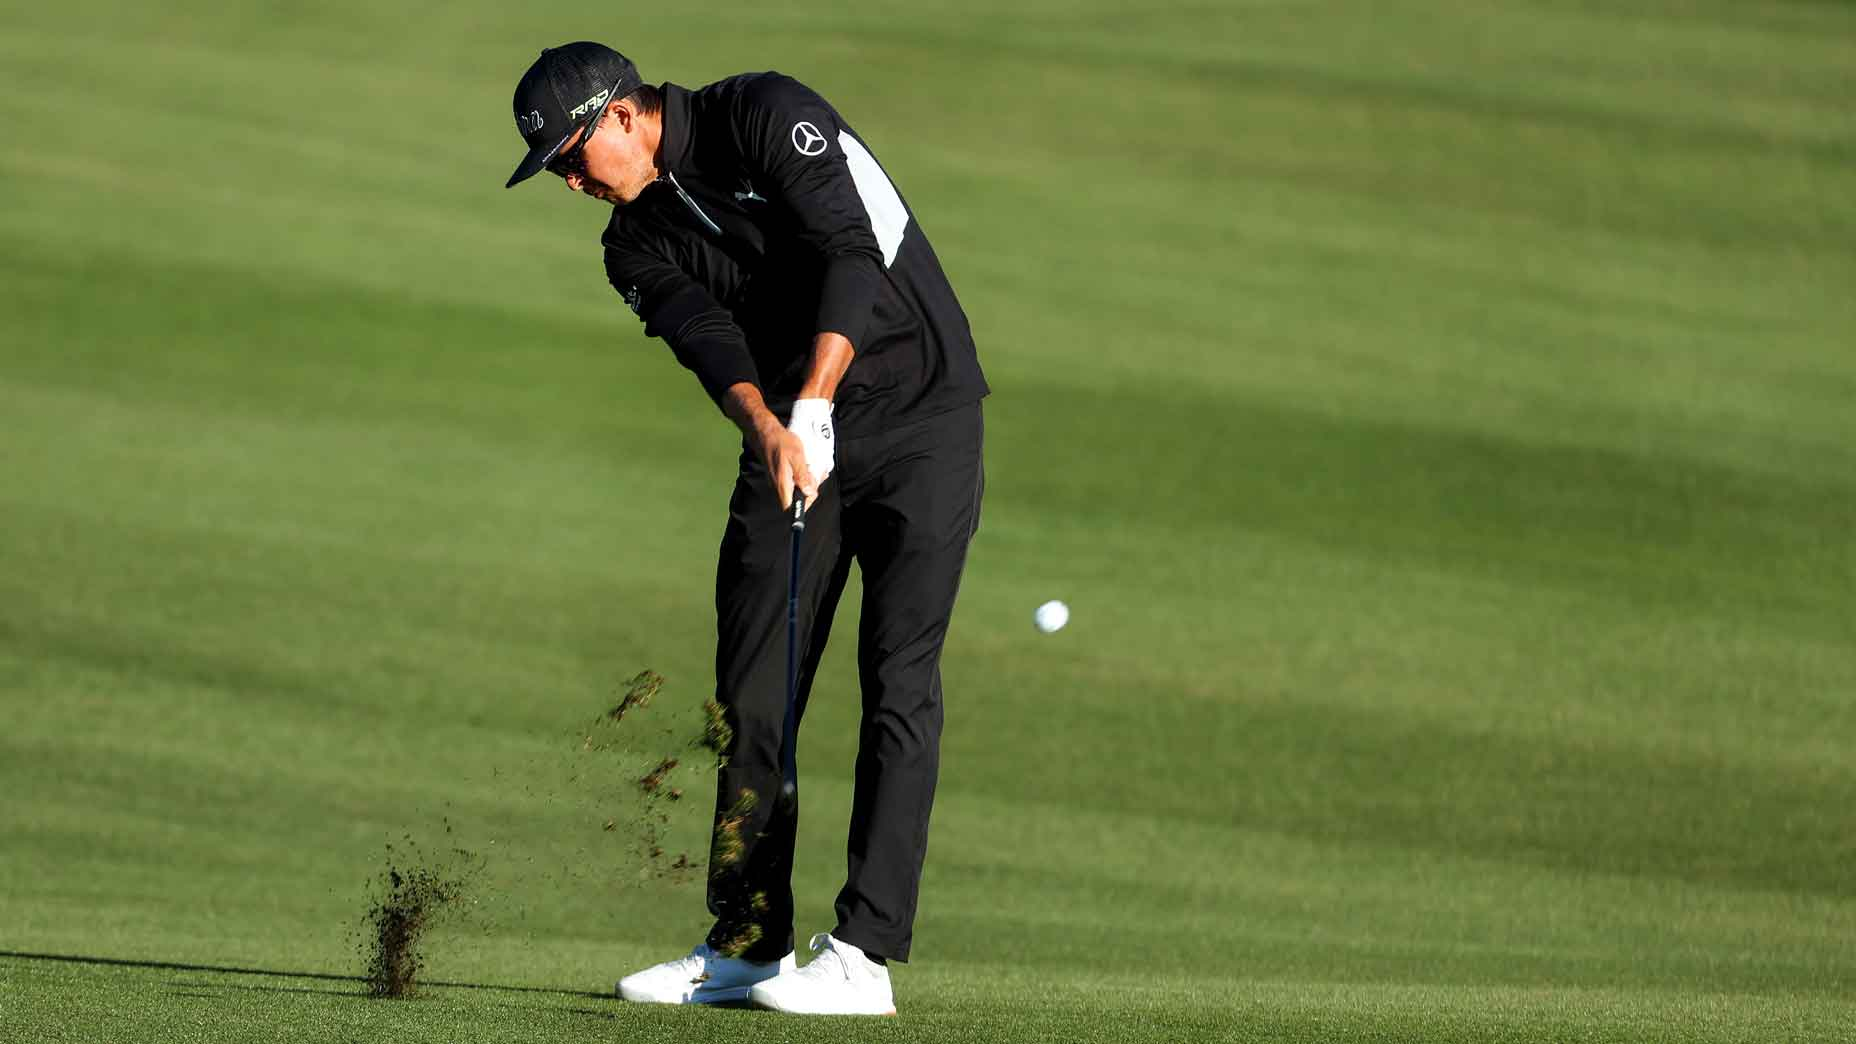 A photo of Rickie Fowler at impact position